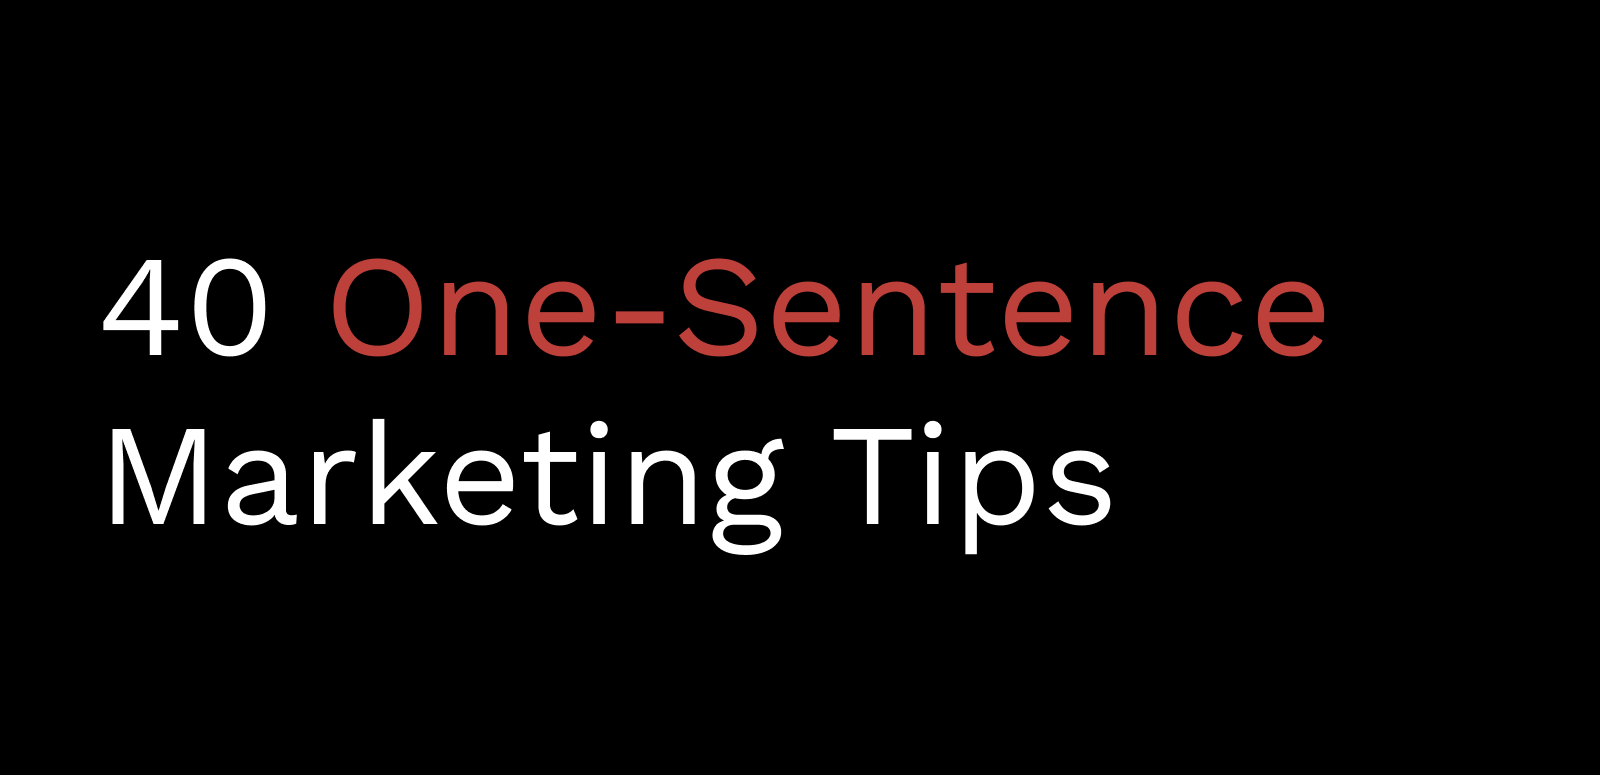 40 One-Sentence Marketing Tips